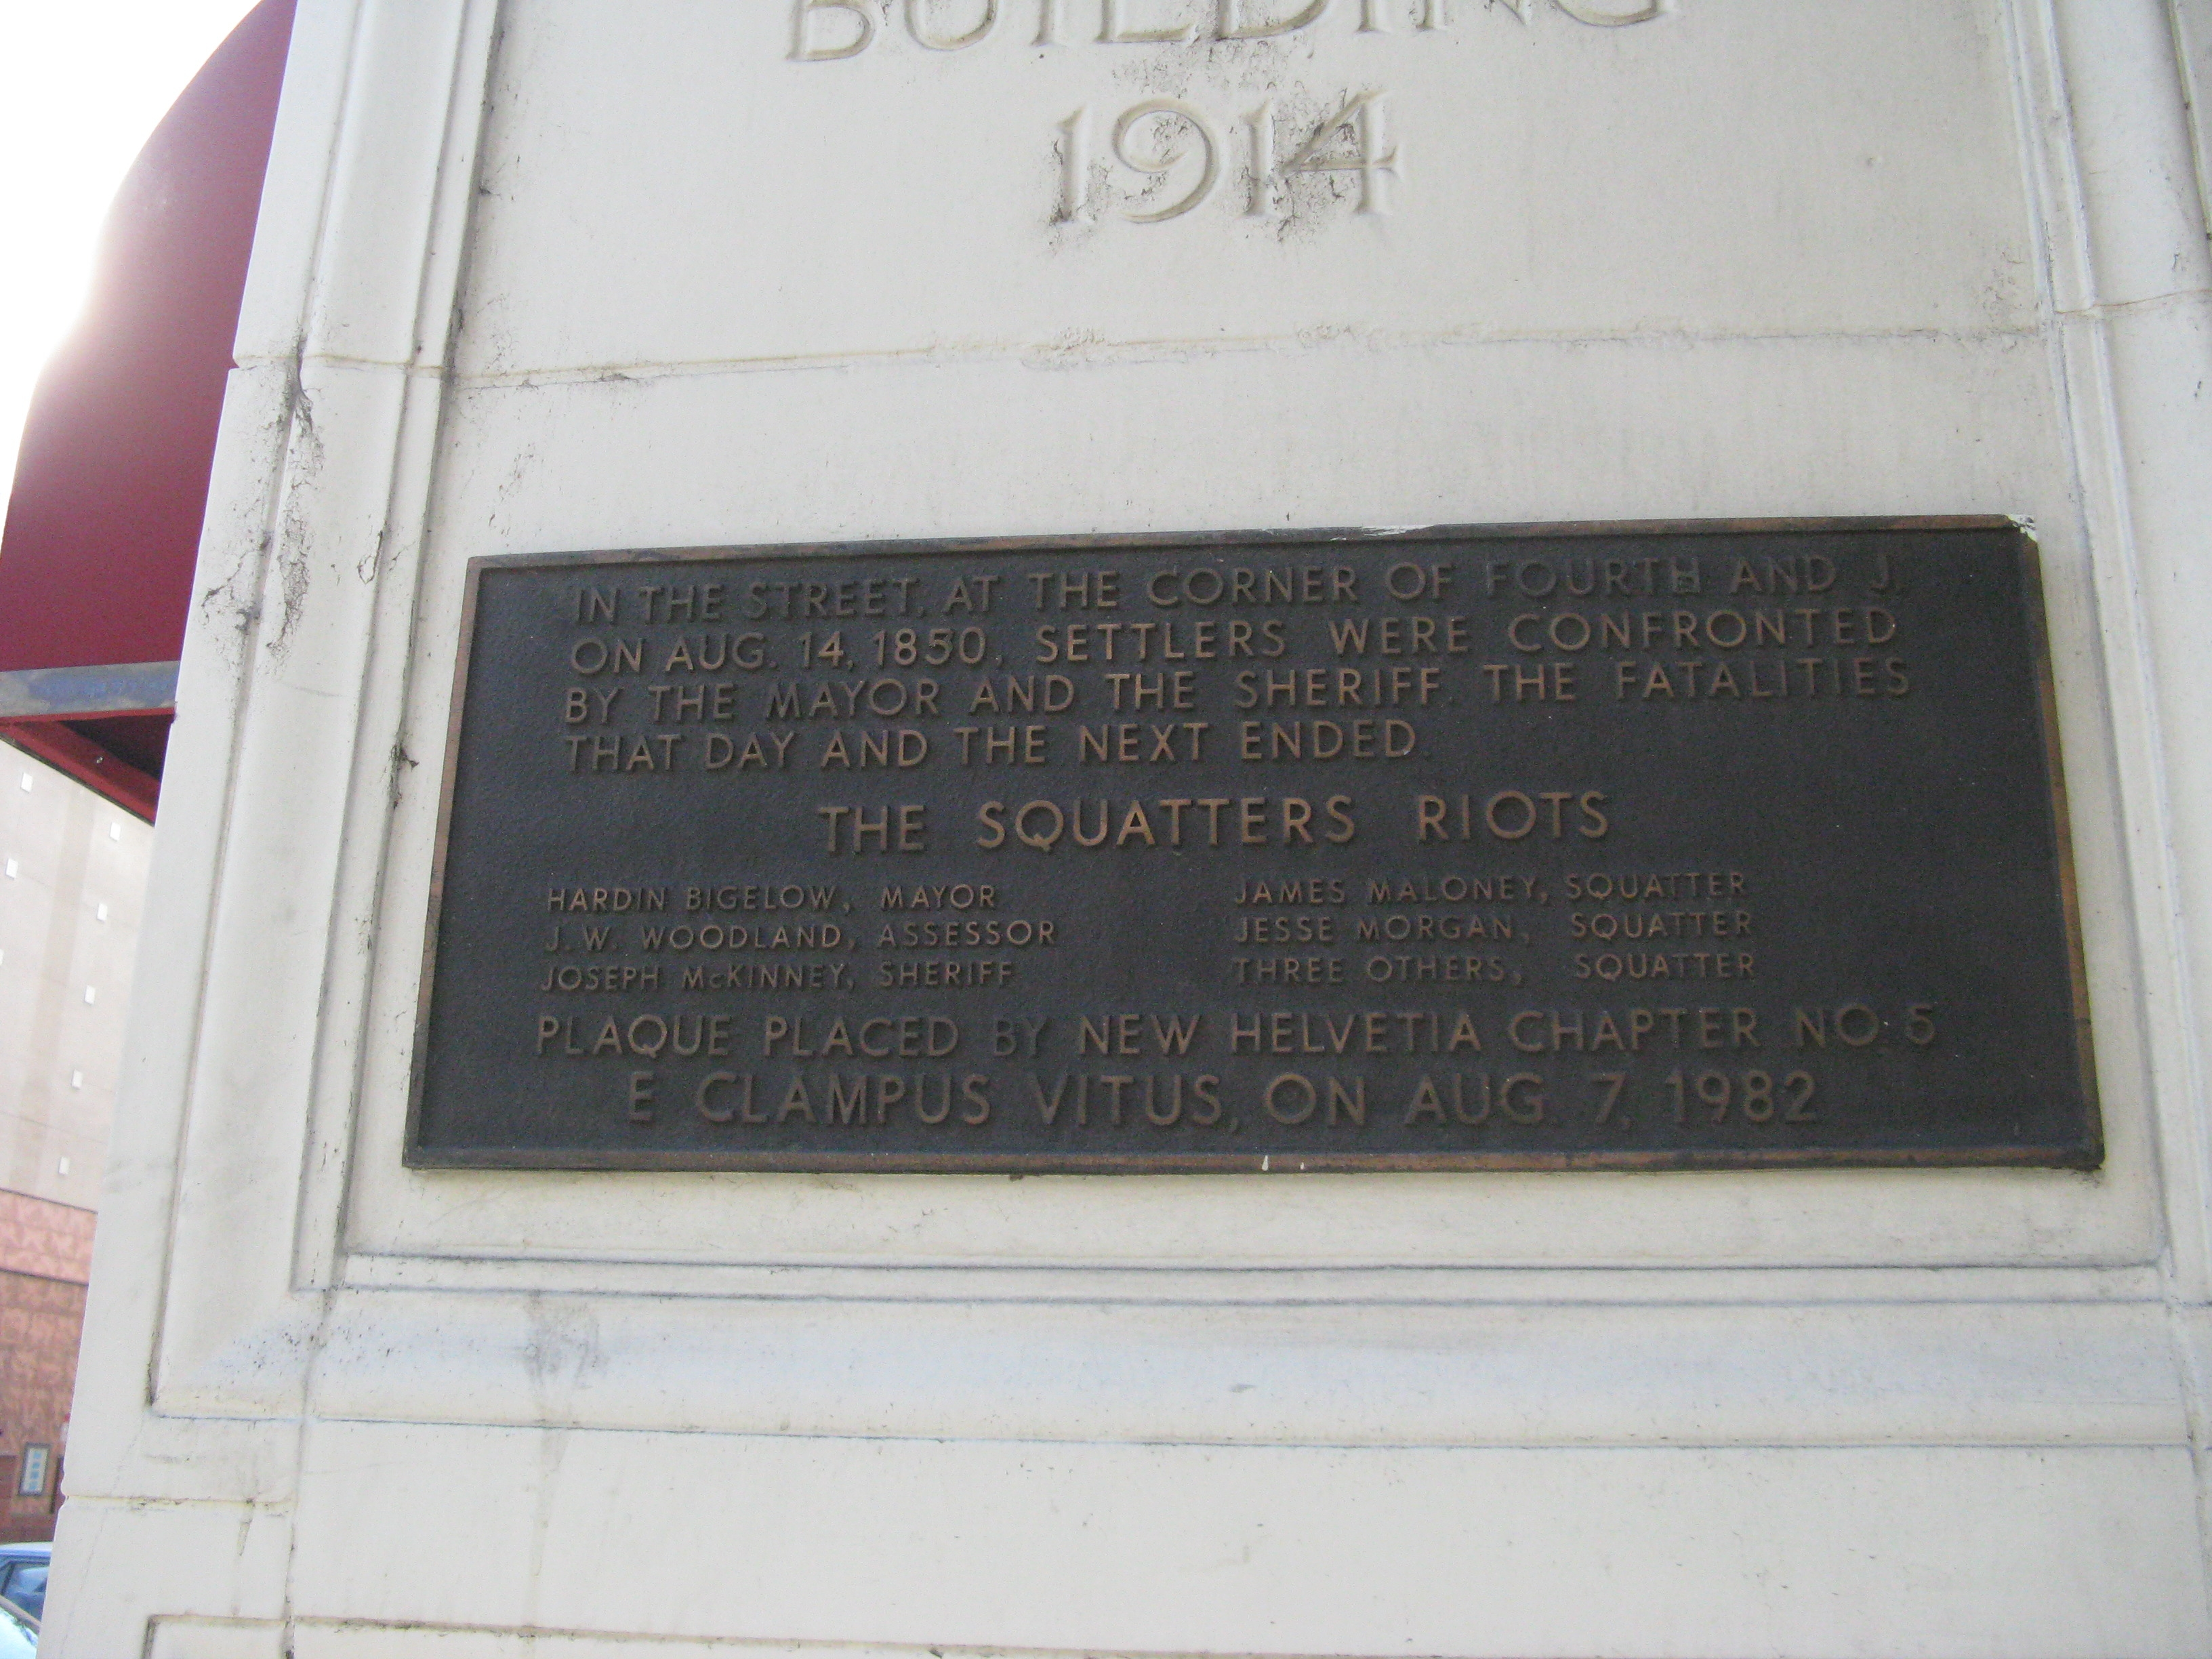 The Squatters Riot Marker